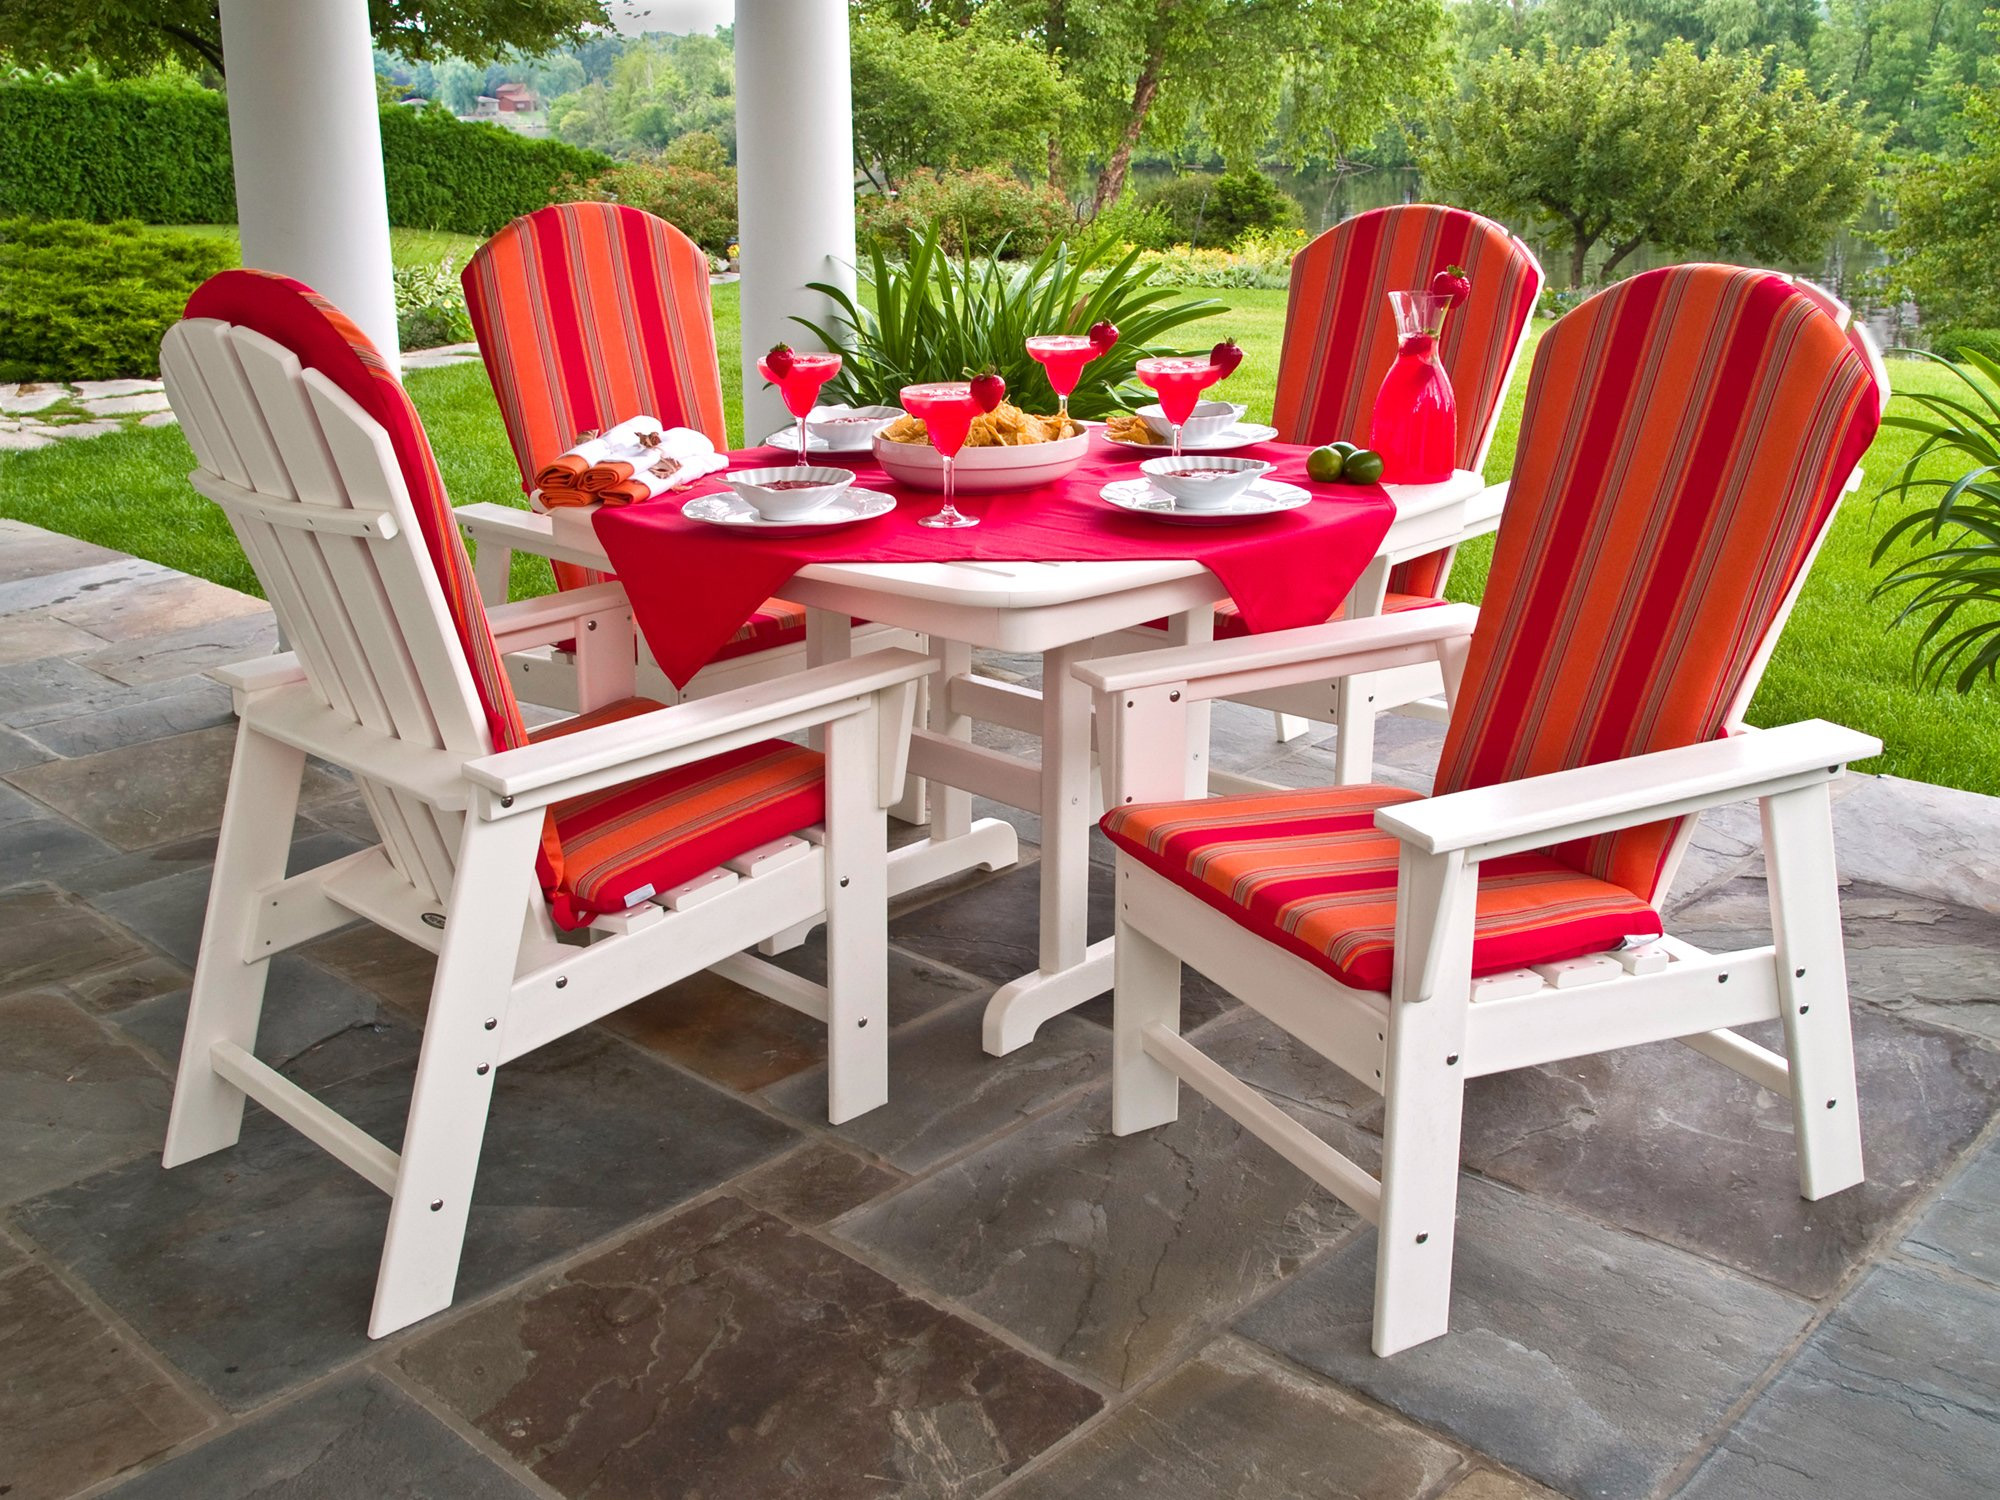 Recycled Plastic South Beach Dining Set With Sunbrella Cushions Leeward Sling Outdoor